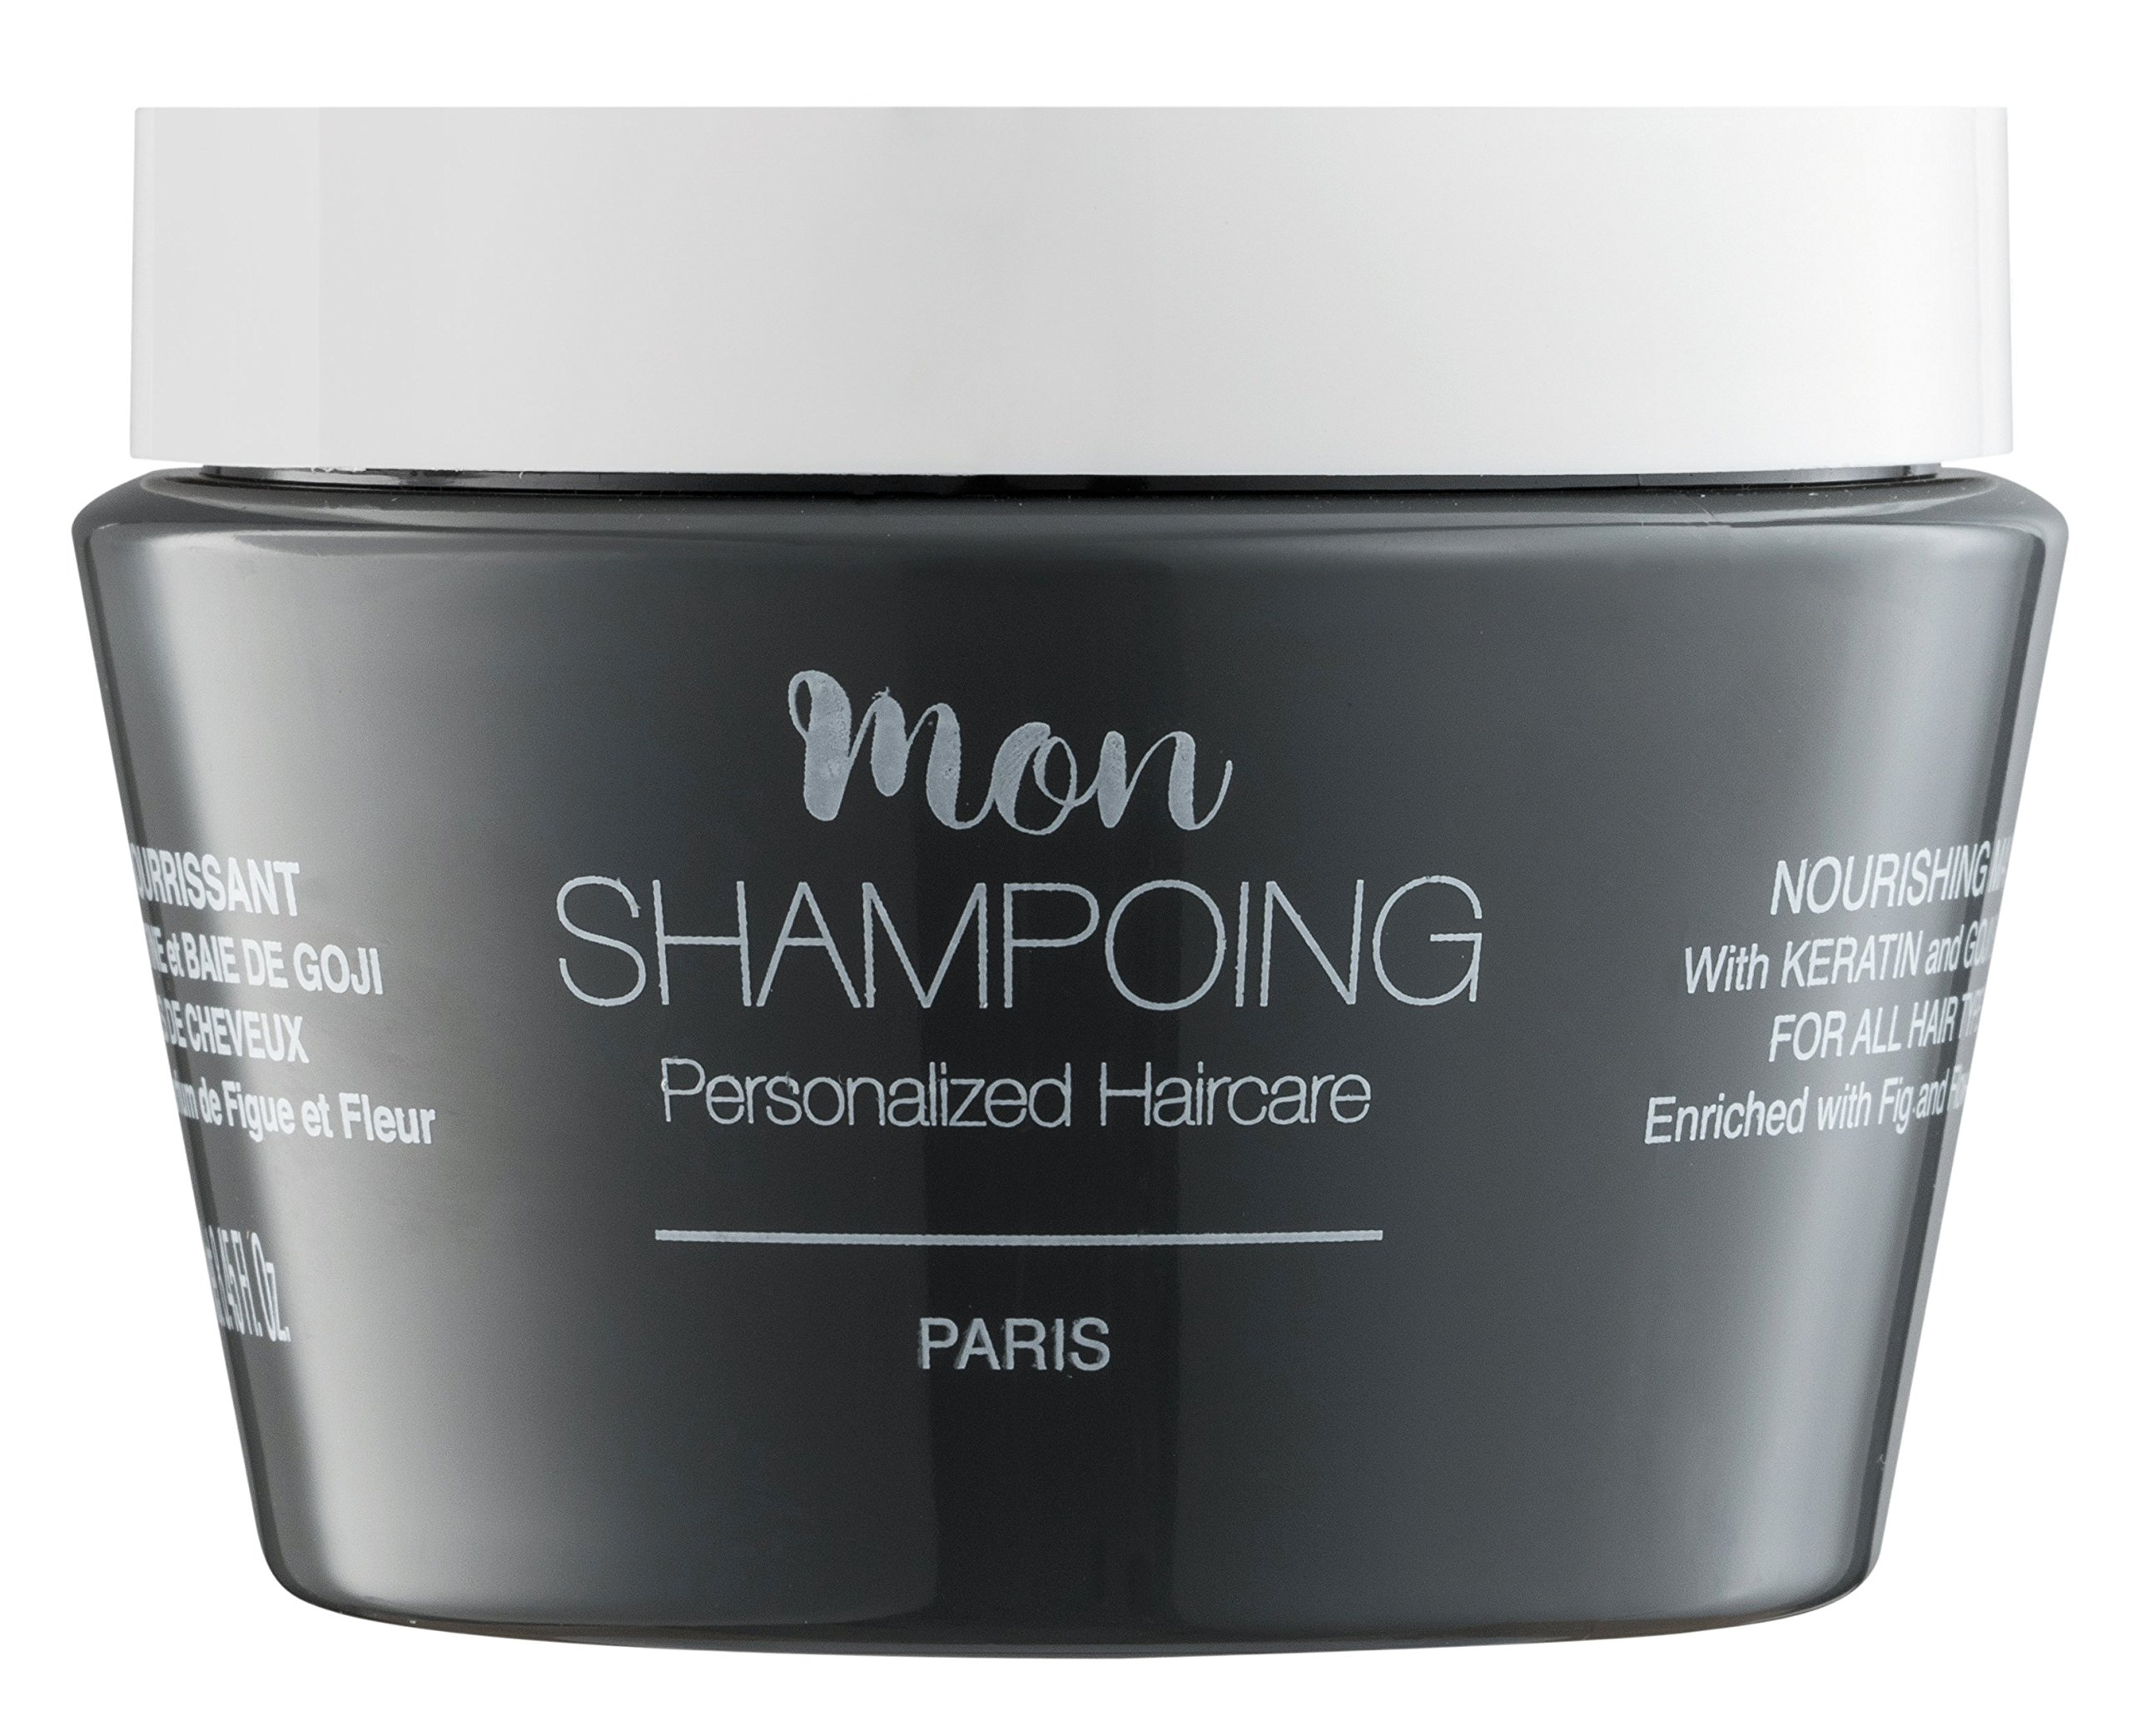 Mon Shampoing nourishing MASK with KERATIN and GOJI BERRY – ALL HAIR TYPES – 250 ml by Mon Shampoing (Image #4)